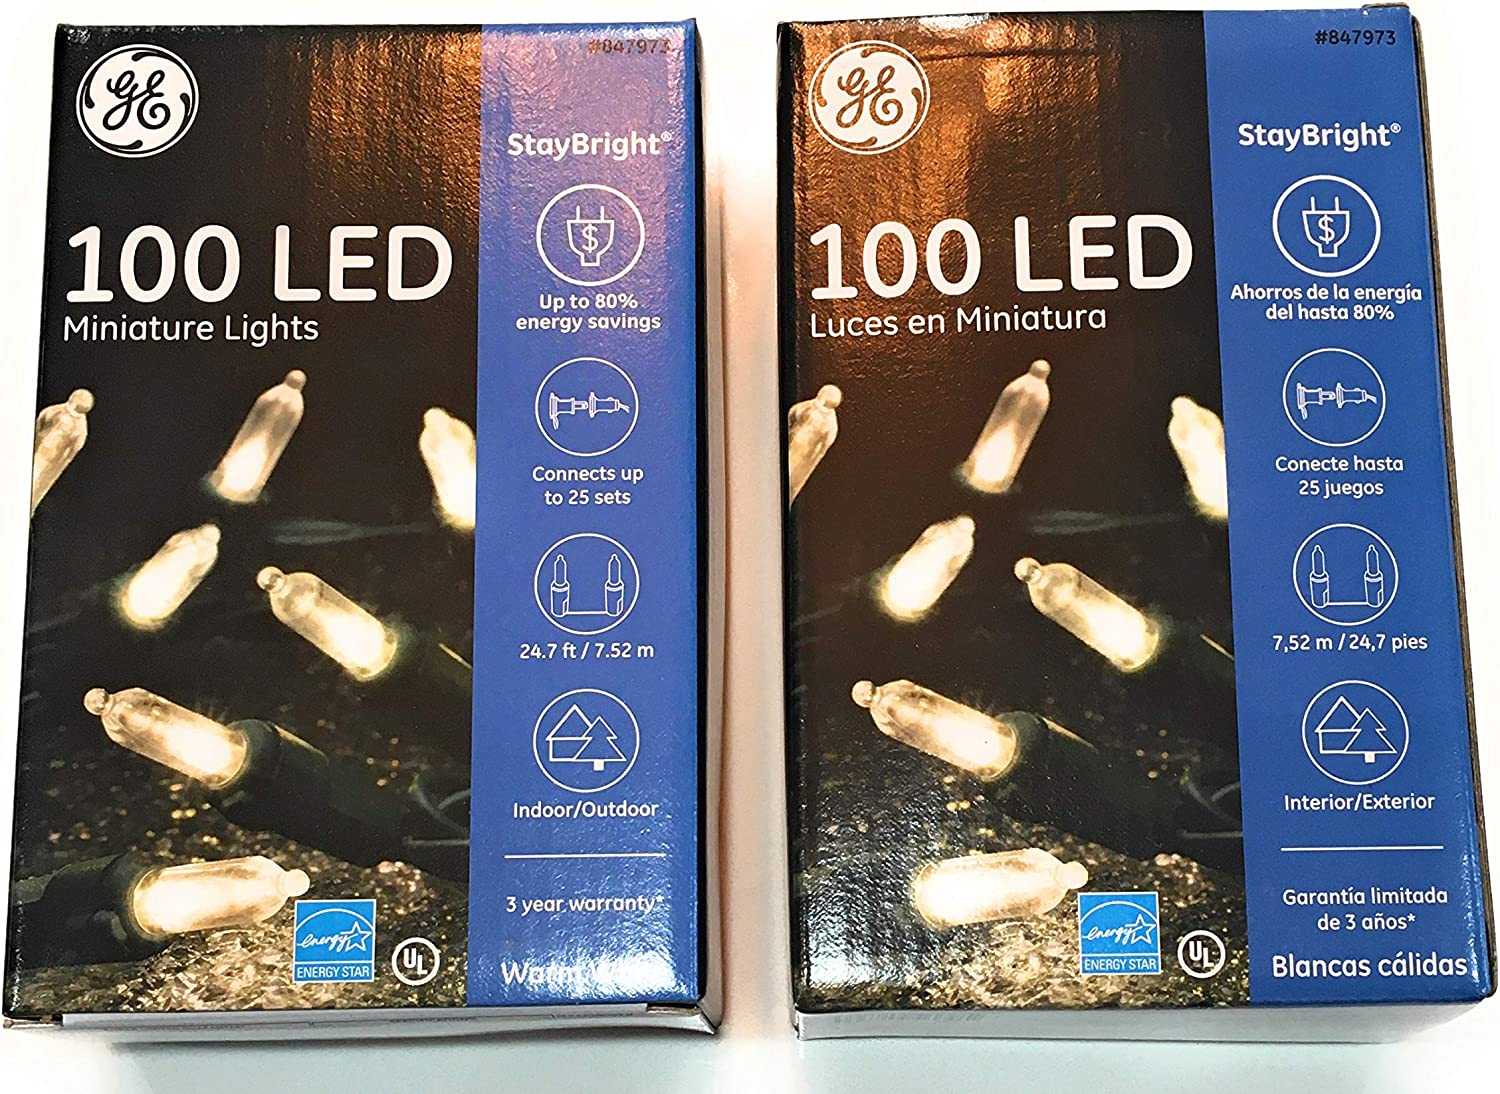 Simple Quality GE Mini LED Light Set 100 Lights Warm White Lights Bundle of Two Packs of 100